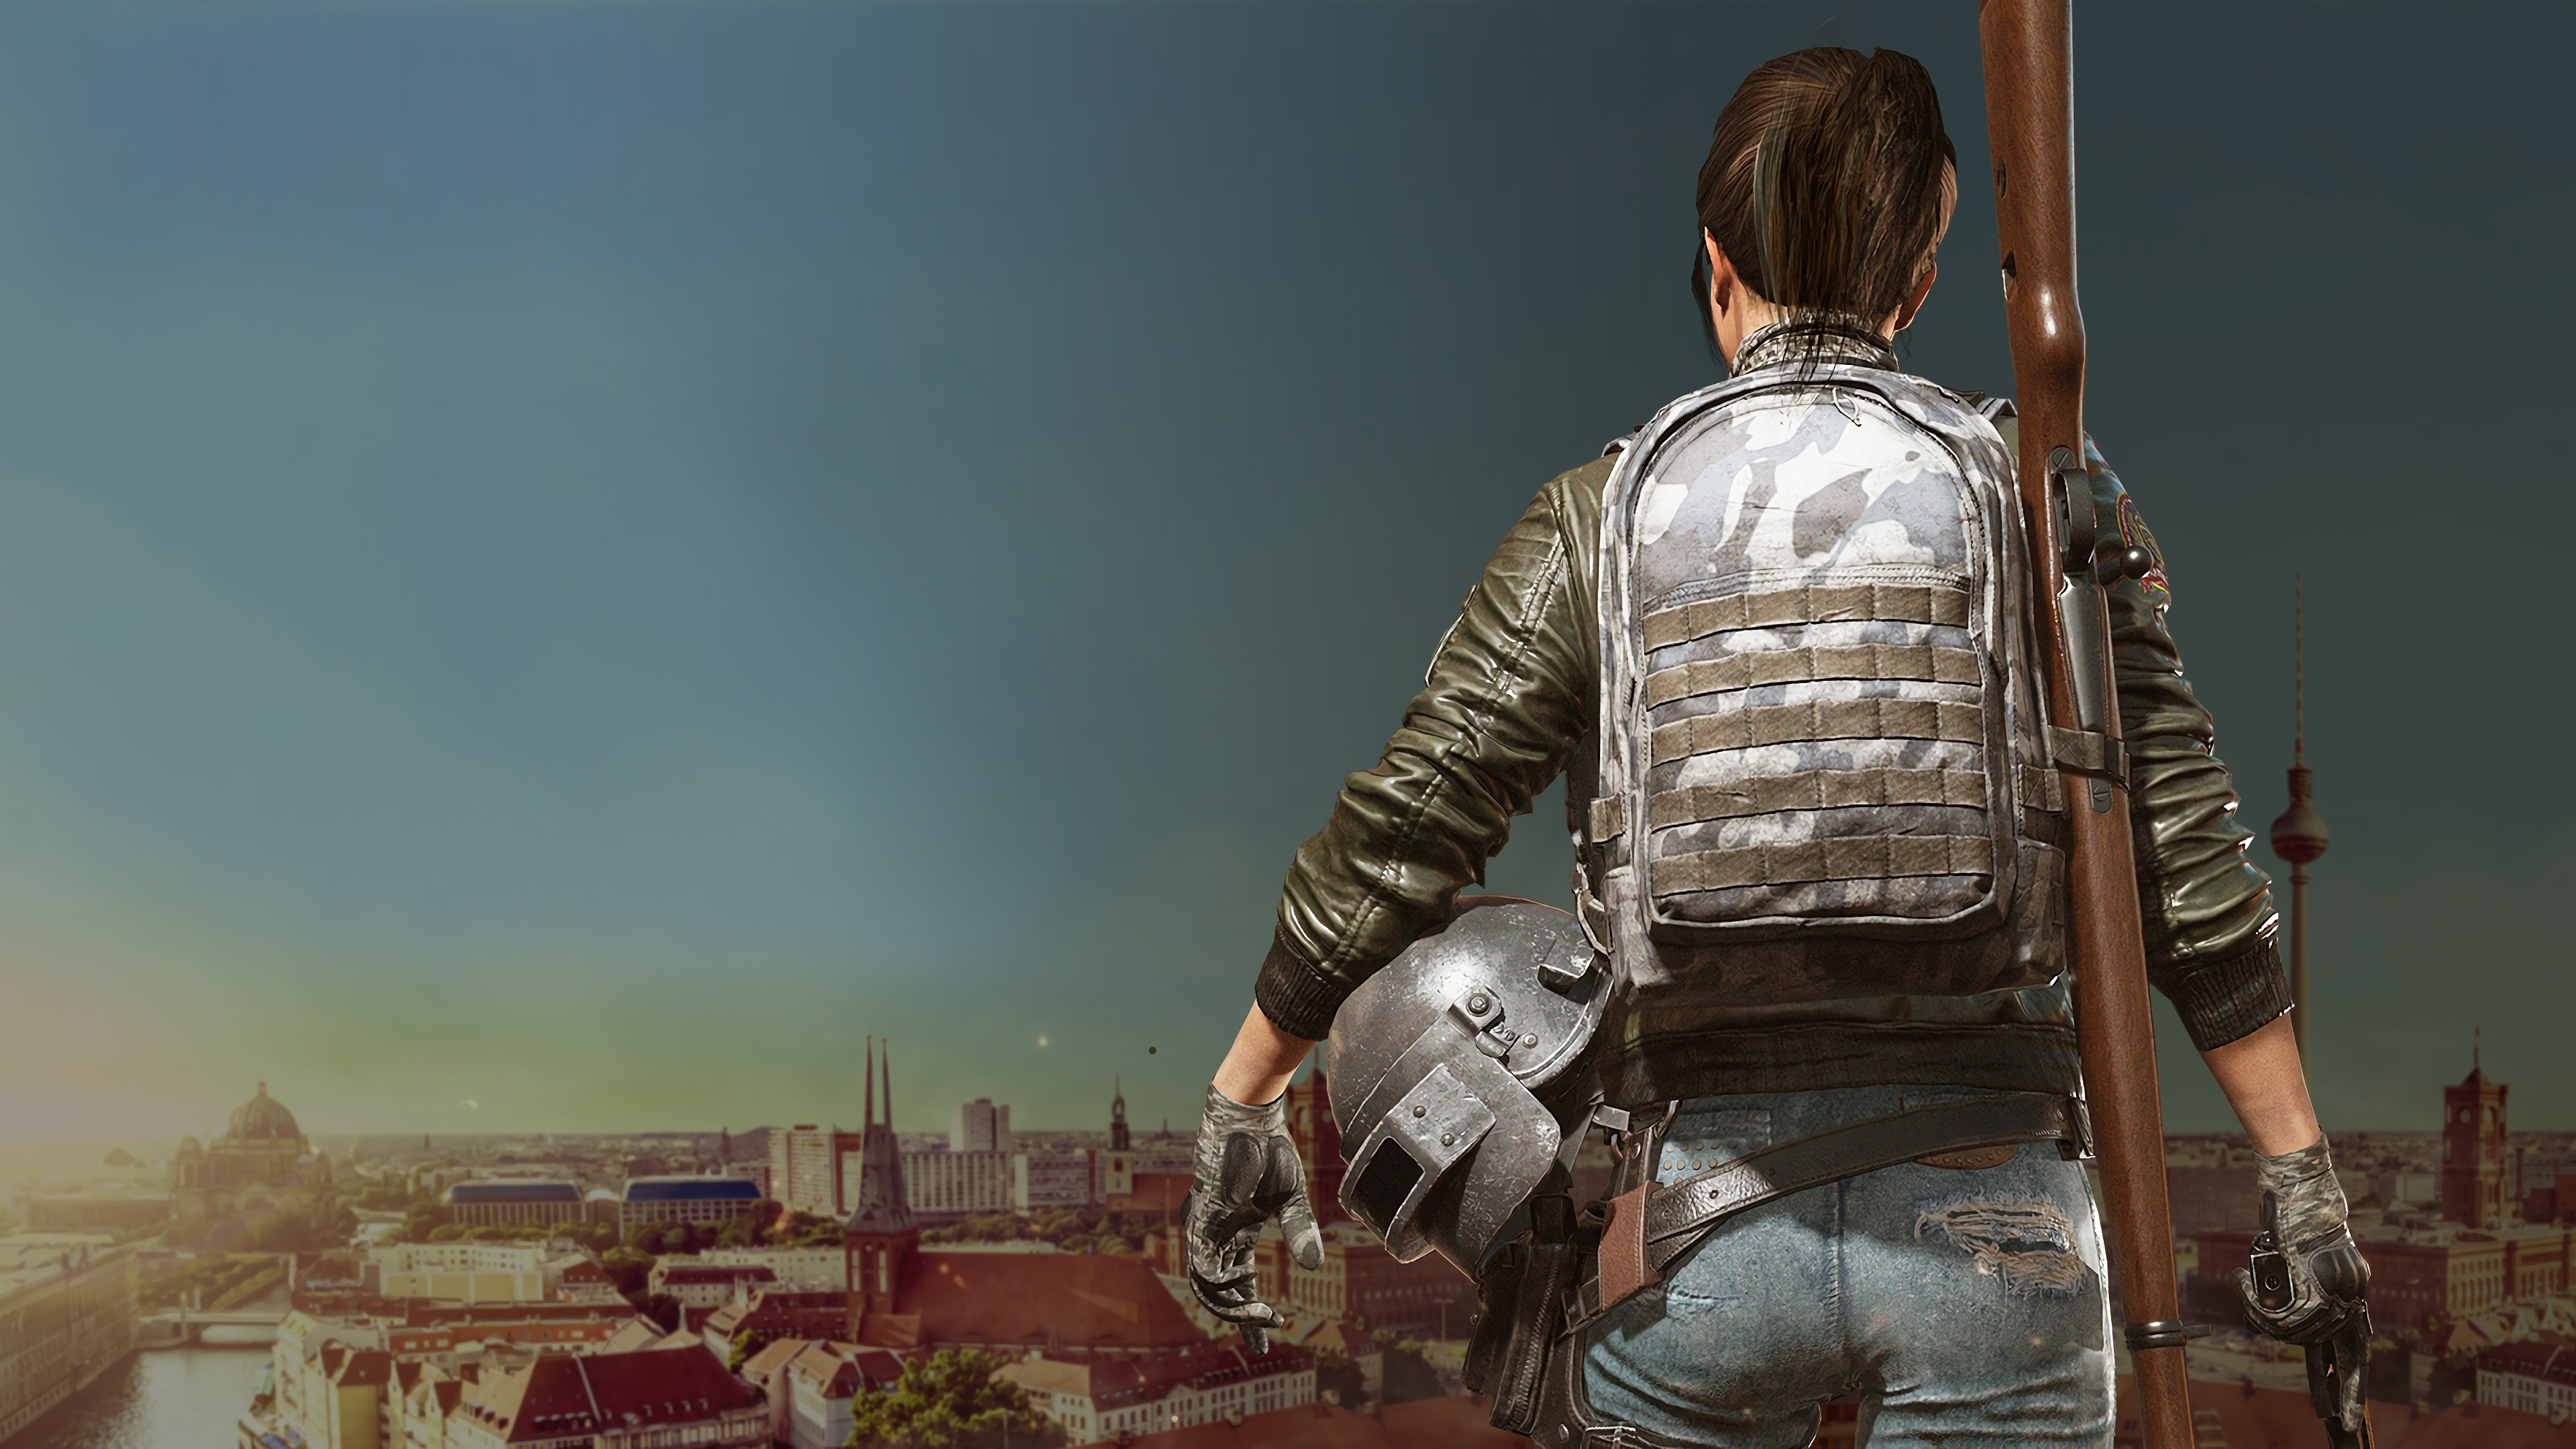 Game Girl Pubg 4k HD Games 4k Wallpapers Images Backgrounds 3840x2160